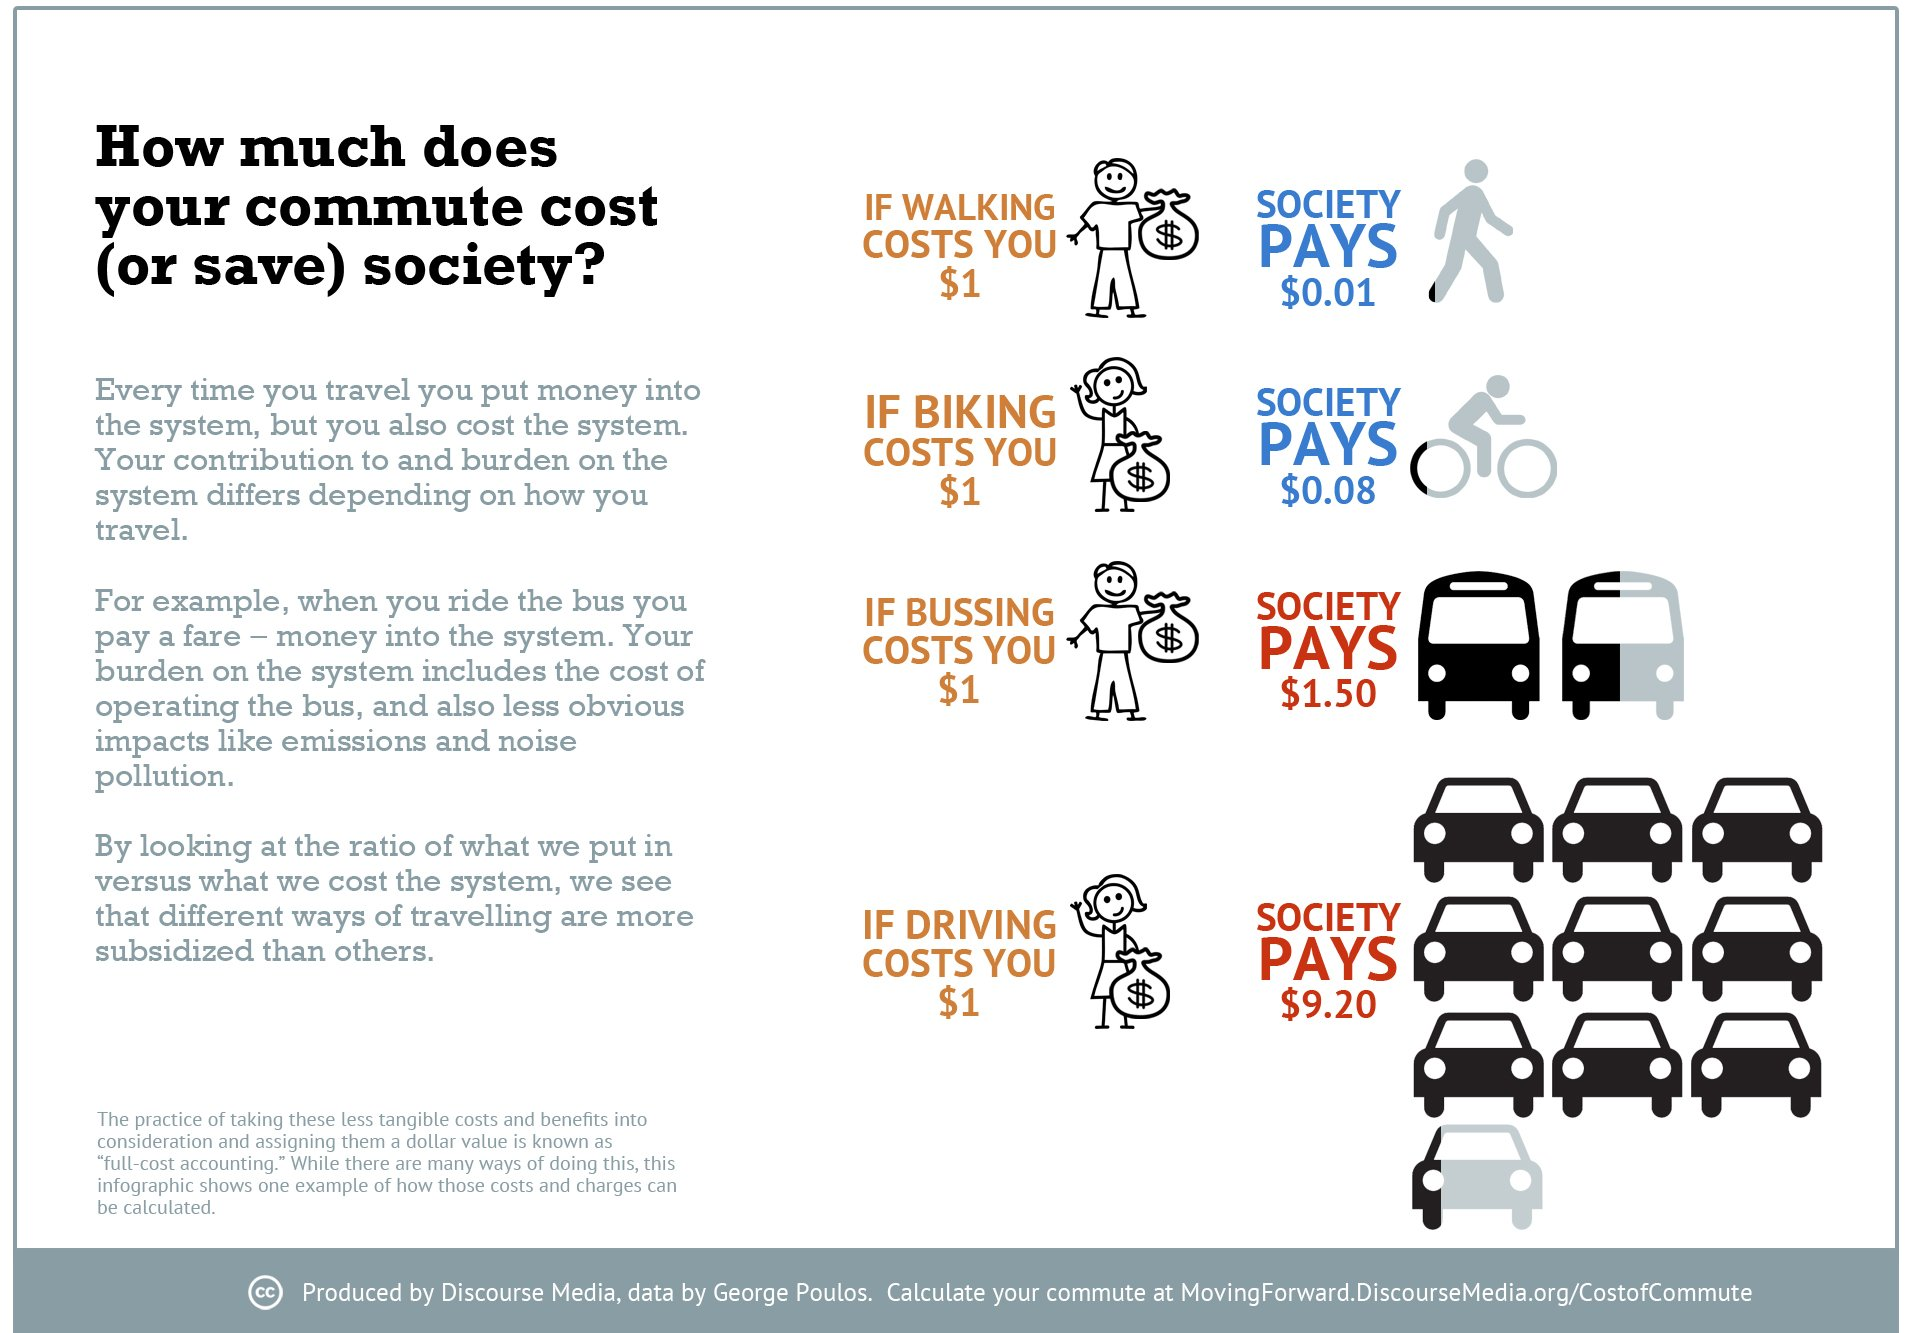 How Much Does Your Commute Cost Society Average Joe Cyclist